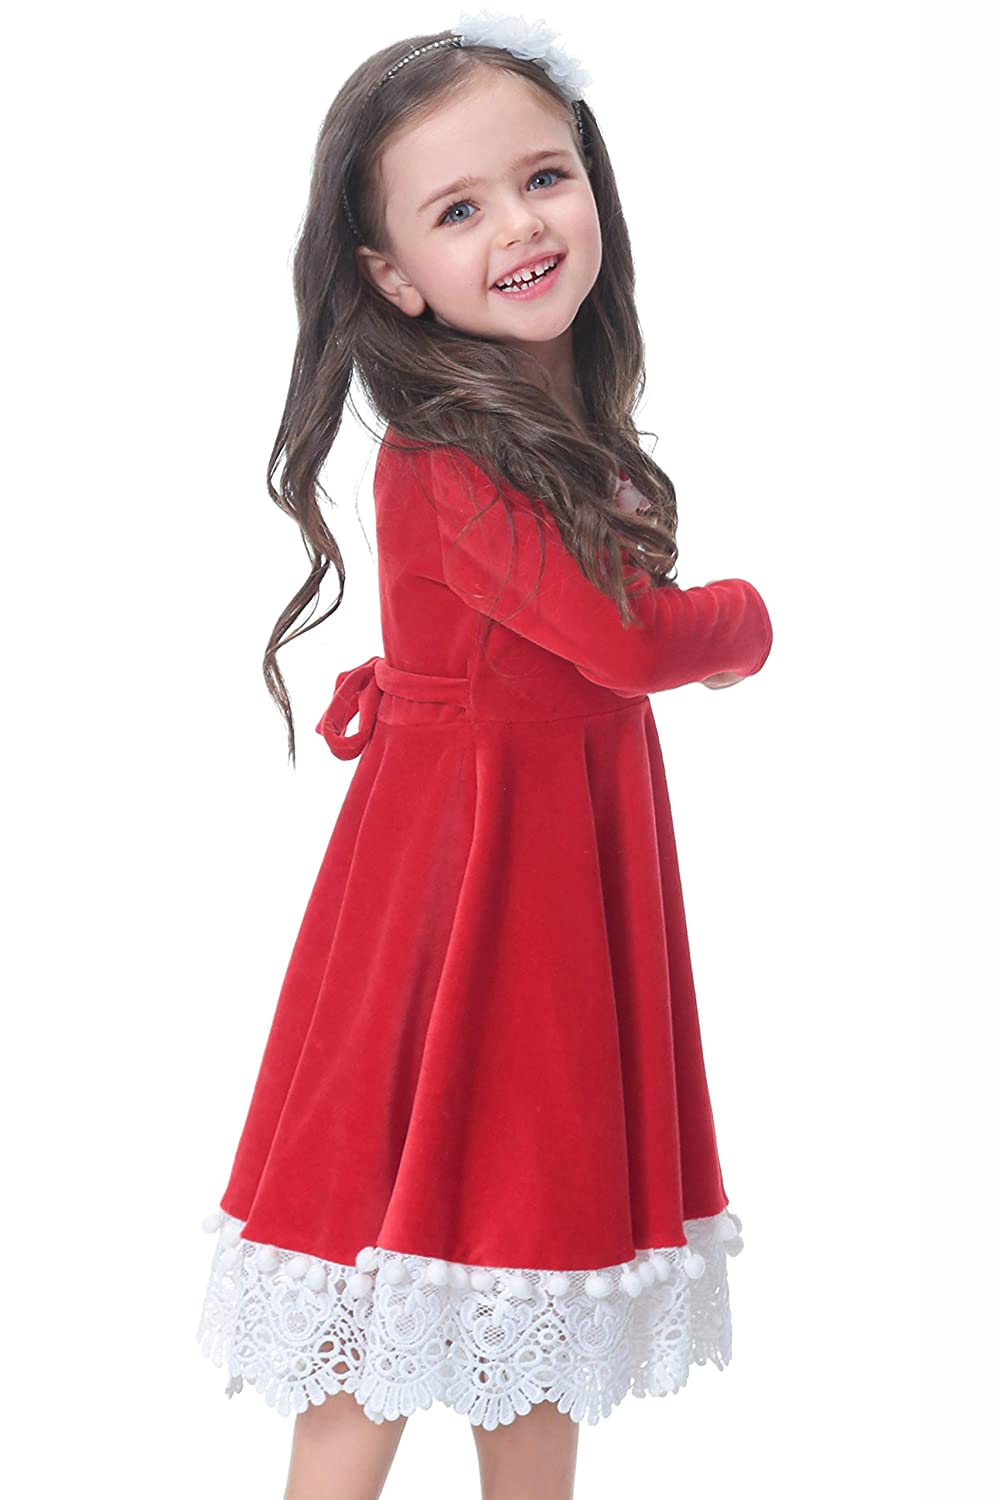 38d2065c357 Amazon.com  Flofallzique Christmas Dress for Girls Long Sleeve Toddler  Dress Birthday Party Baby Clothes  Clothing